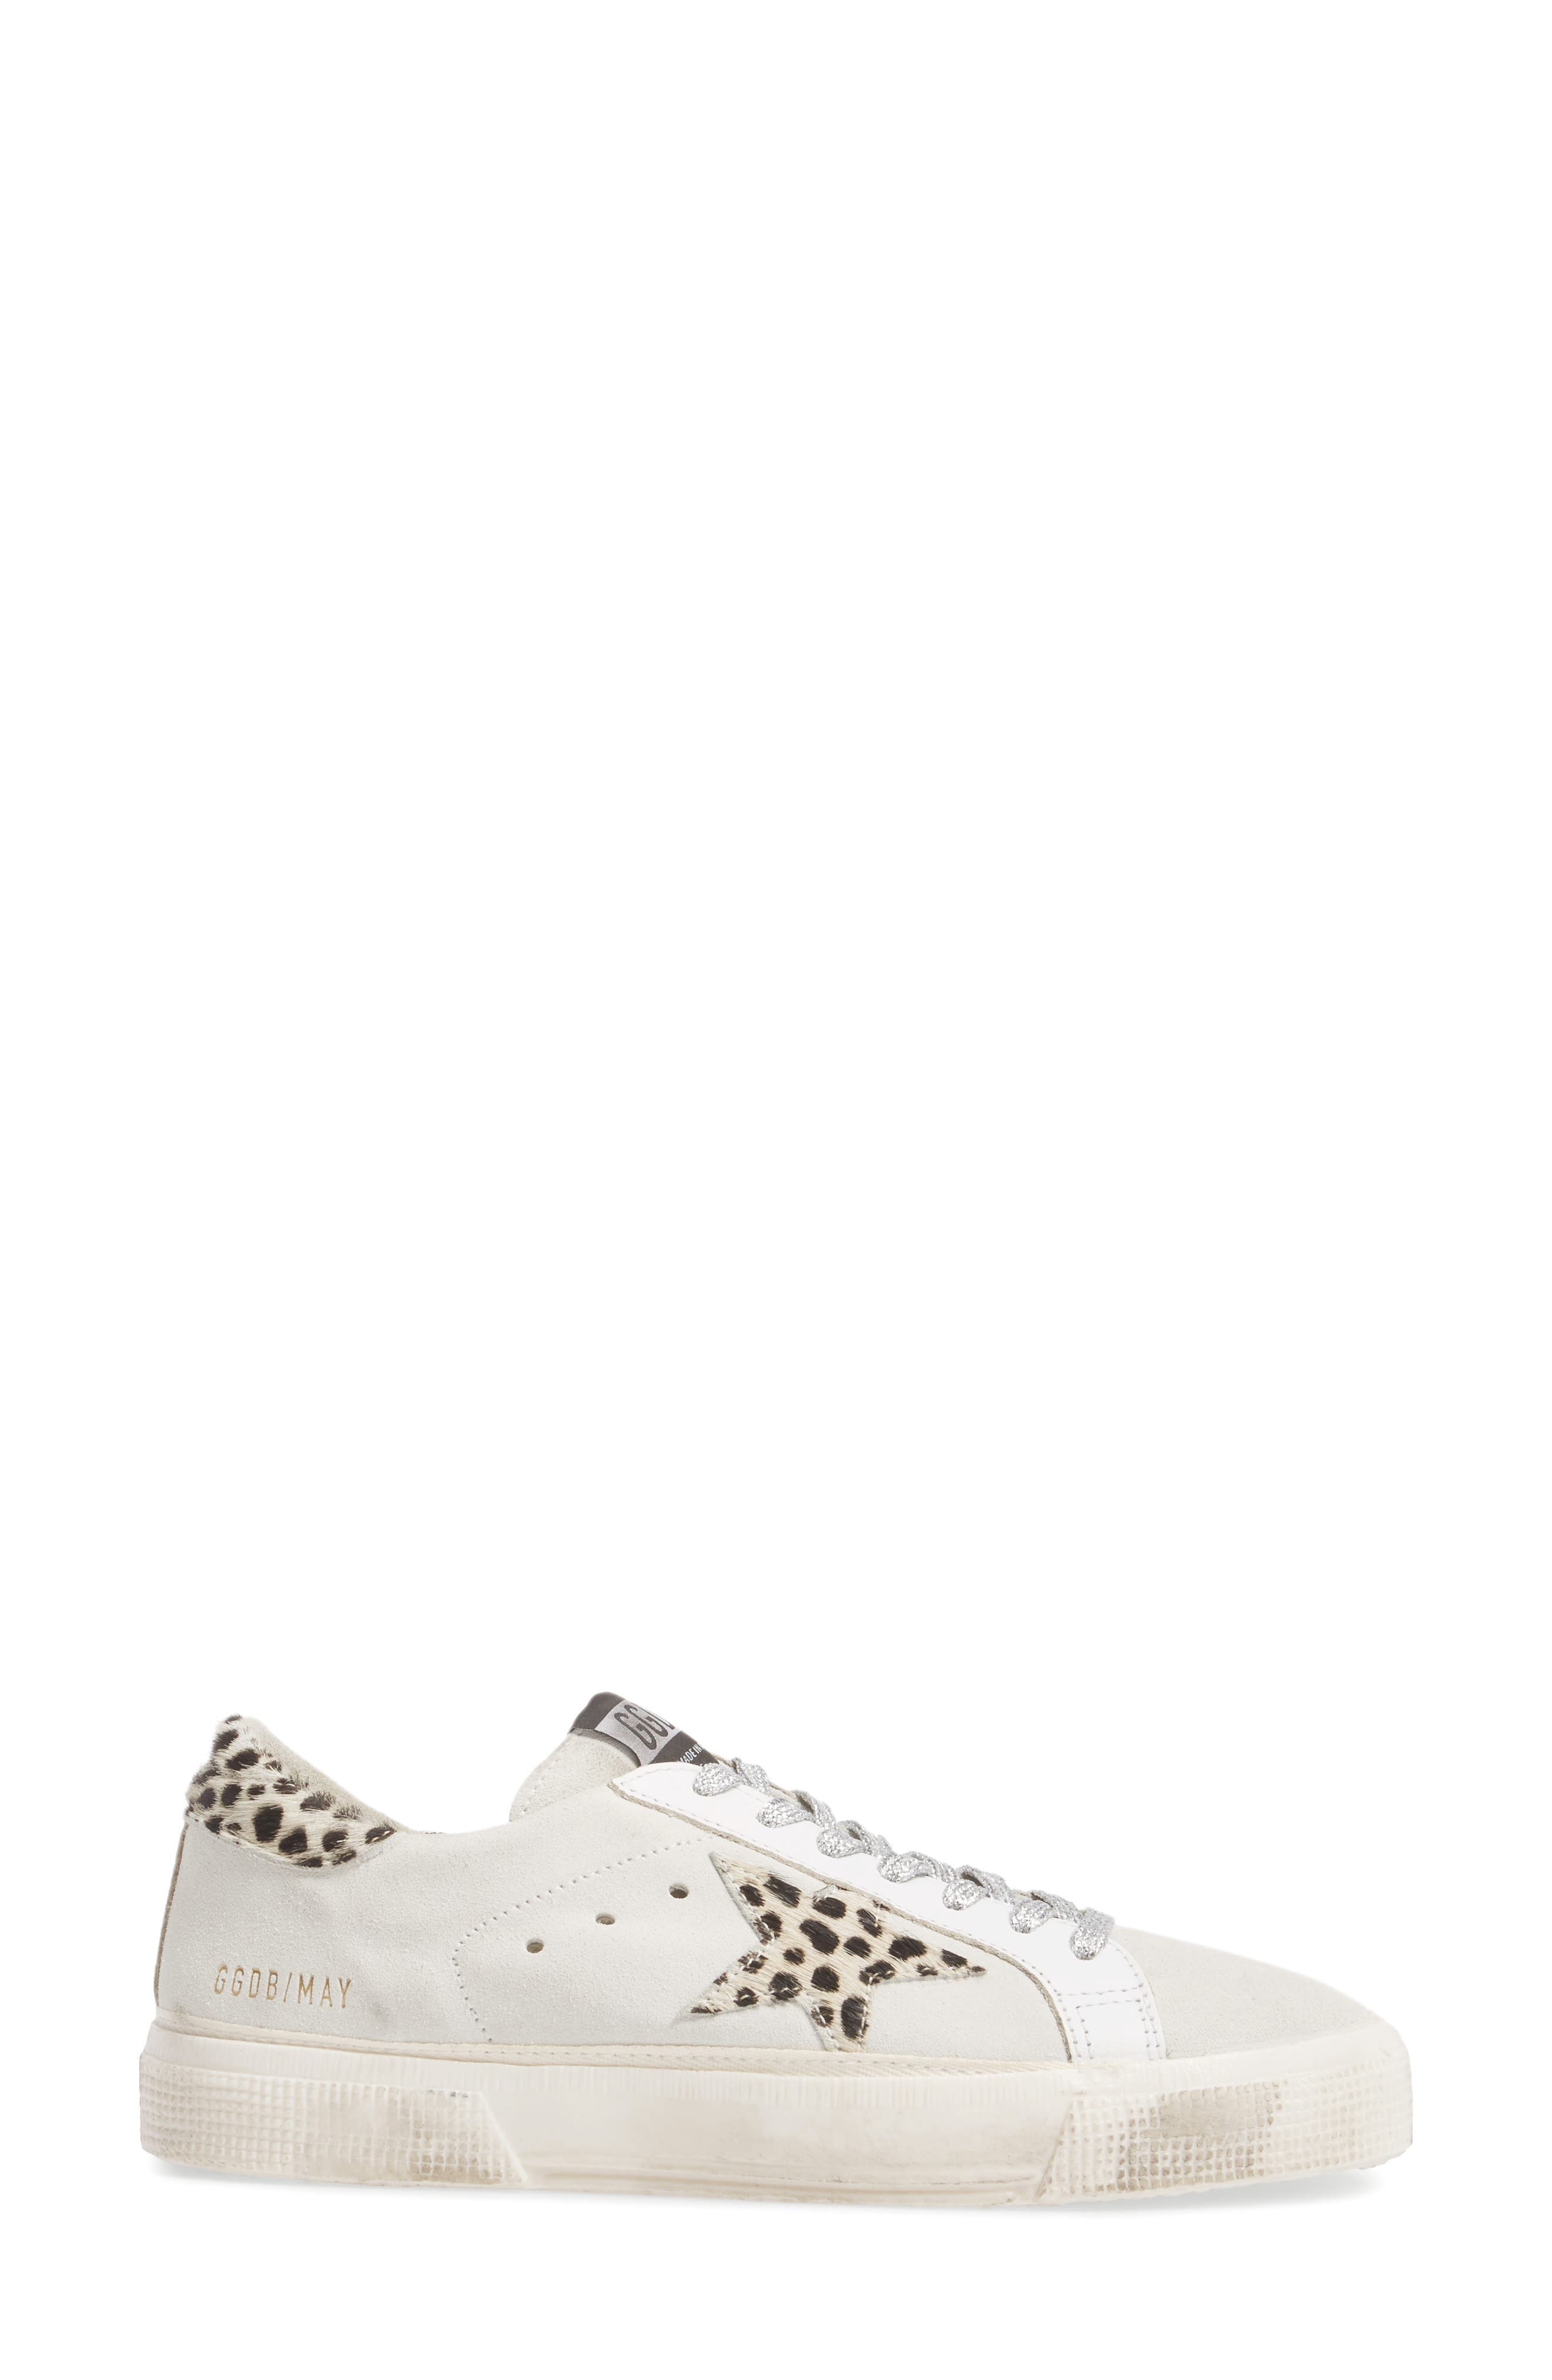 May Low Top Sneaker,                             Alternate thumbnail 3, color,                             White Suede/ Leopard